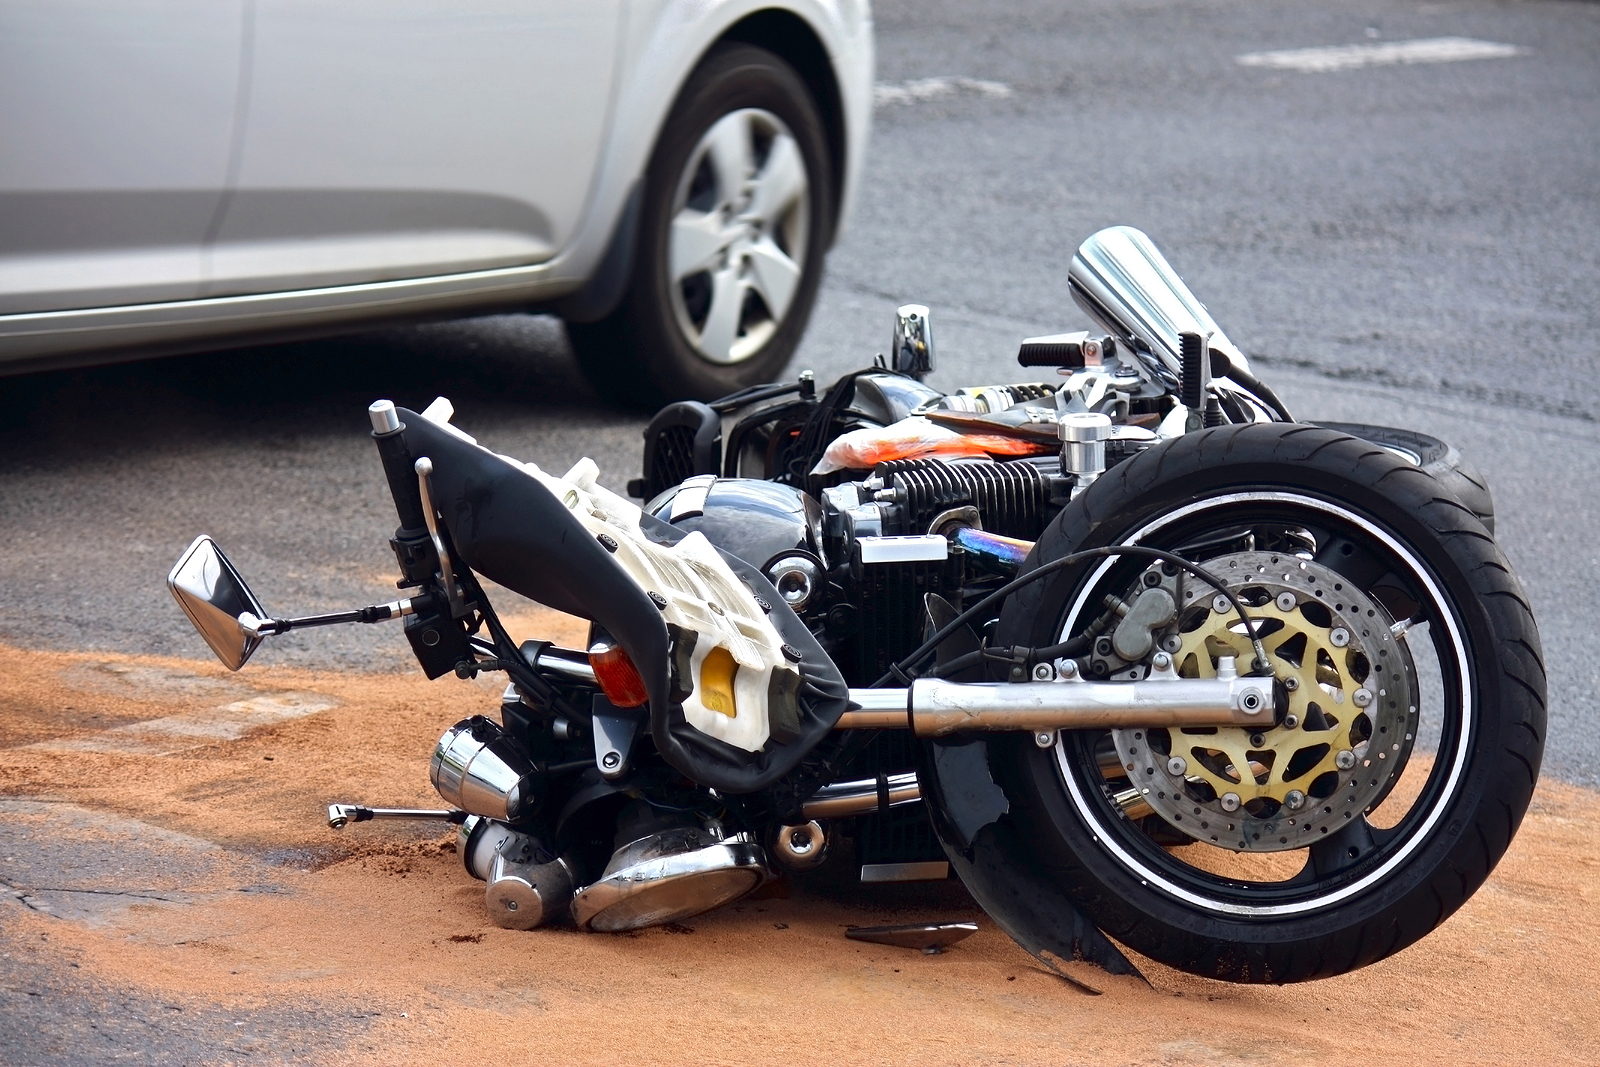 Motorcycle Accident Lawyer Lexington KY | Roberts Law Office